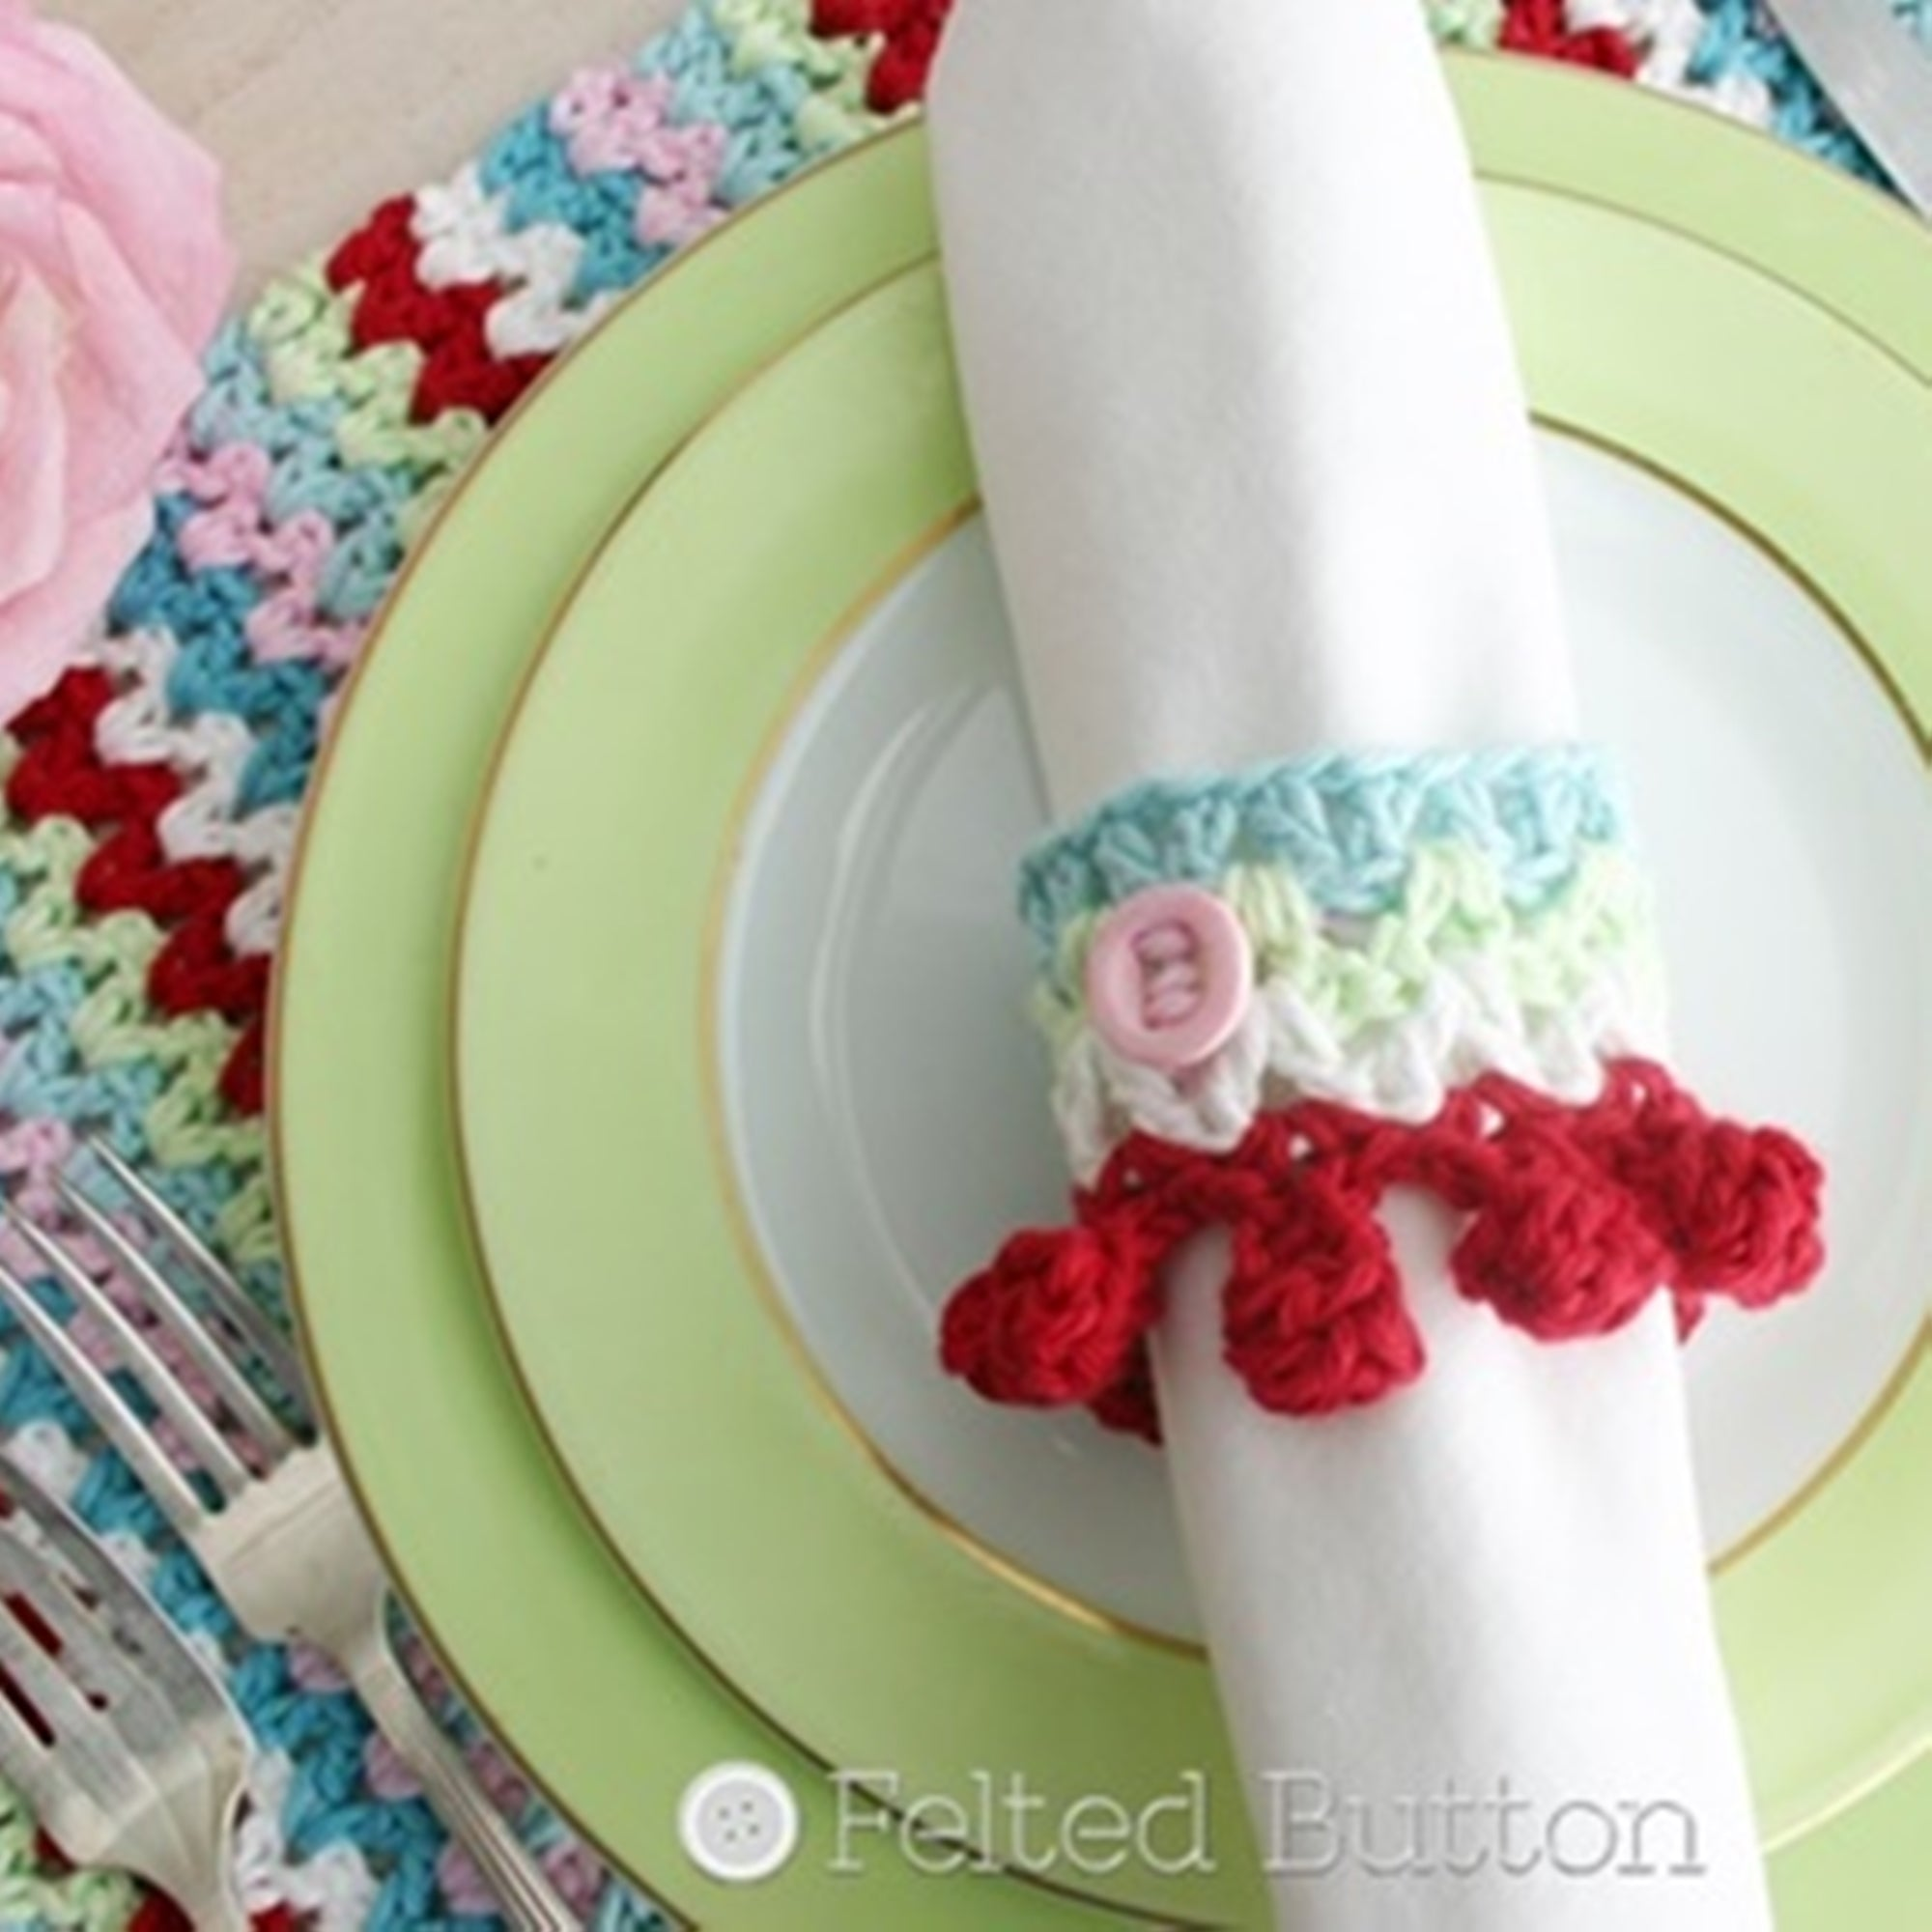 V-Stitch Placemat and Napkin Ring | Crochet Pattern | Felted Button